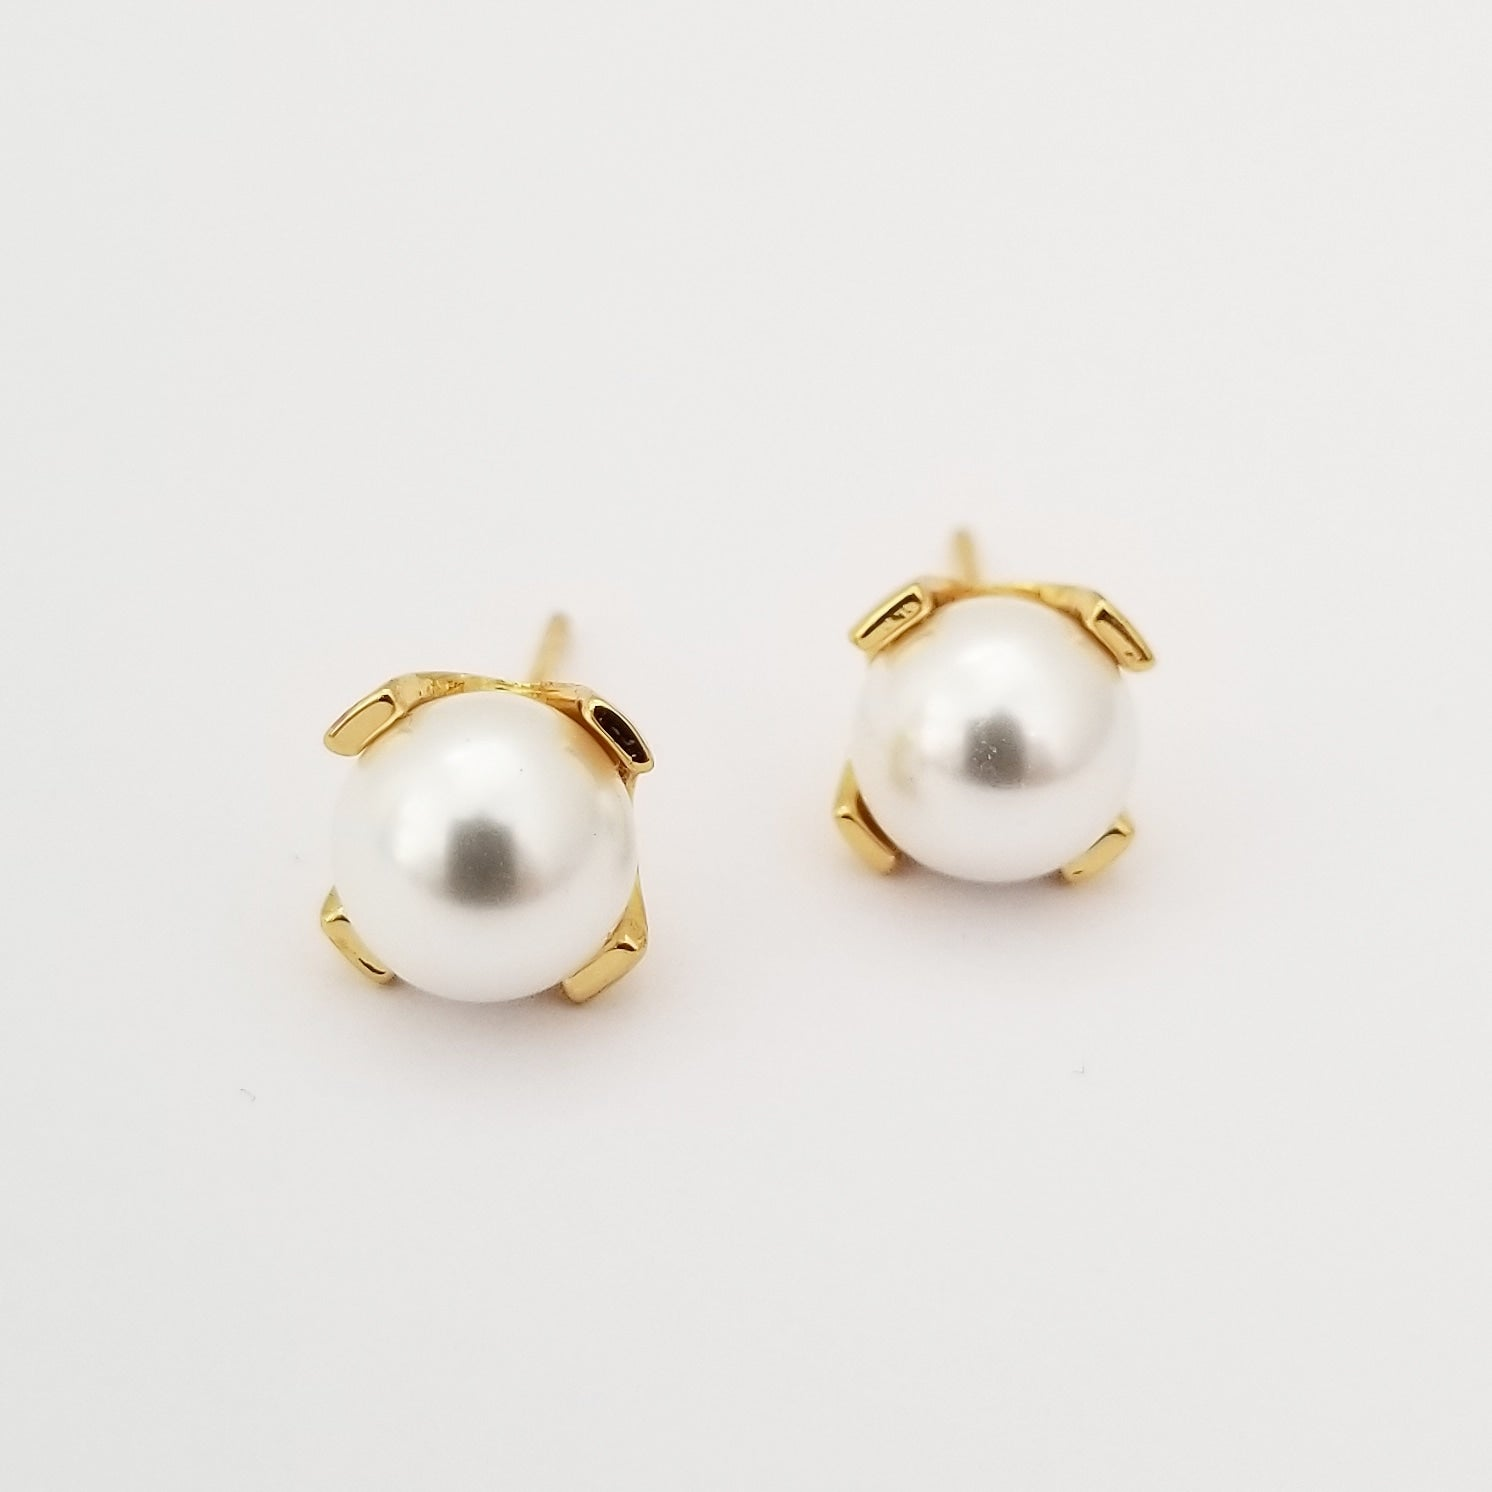 Pearl + Gold Earrings